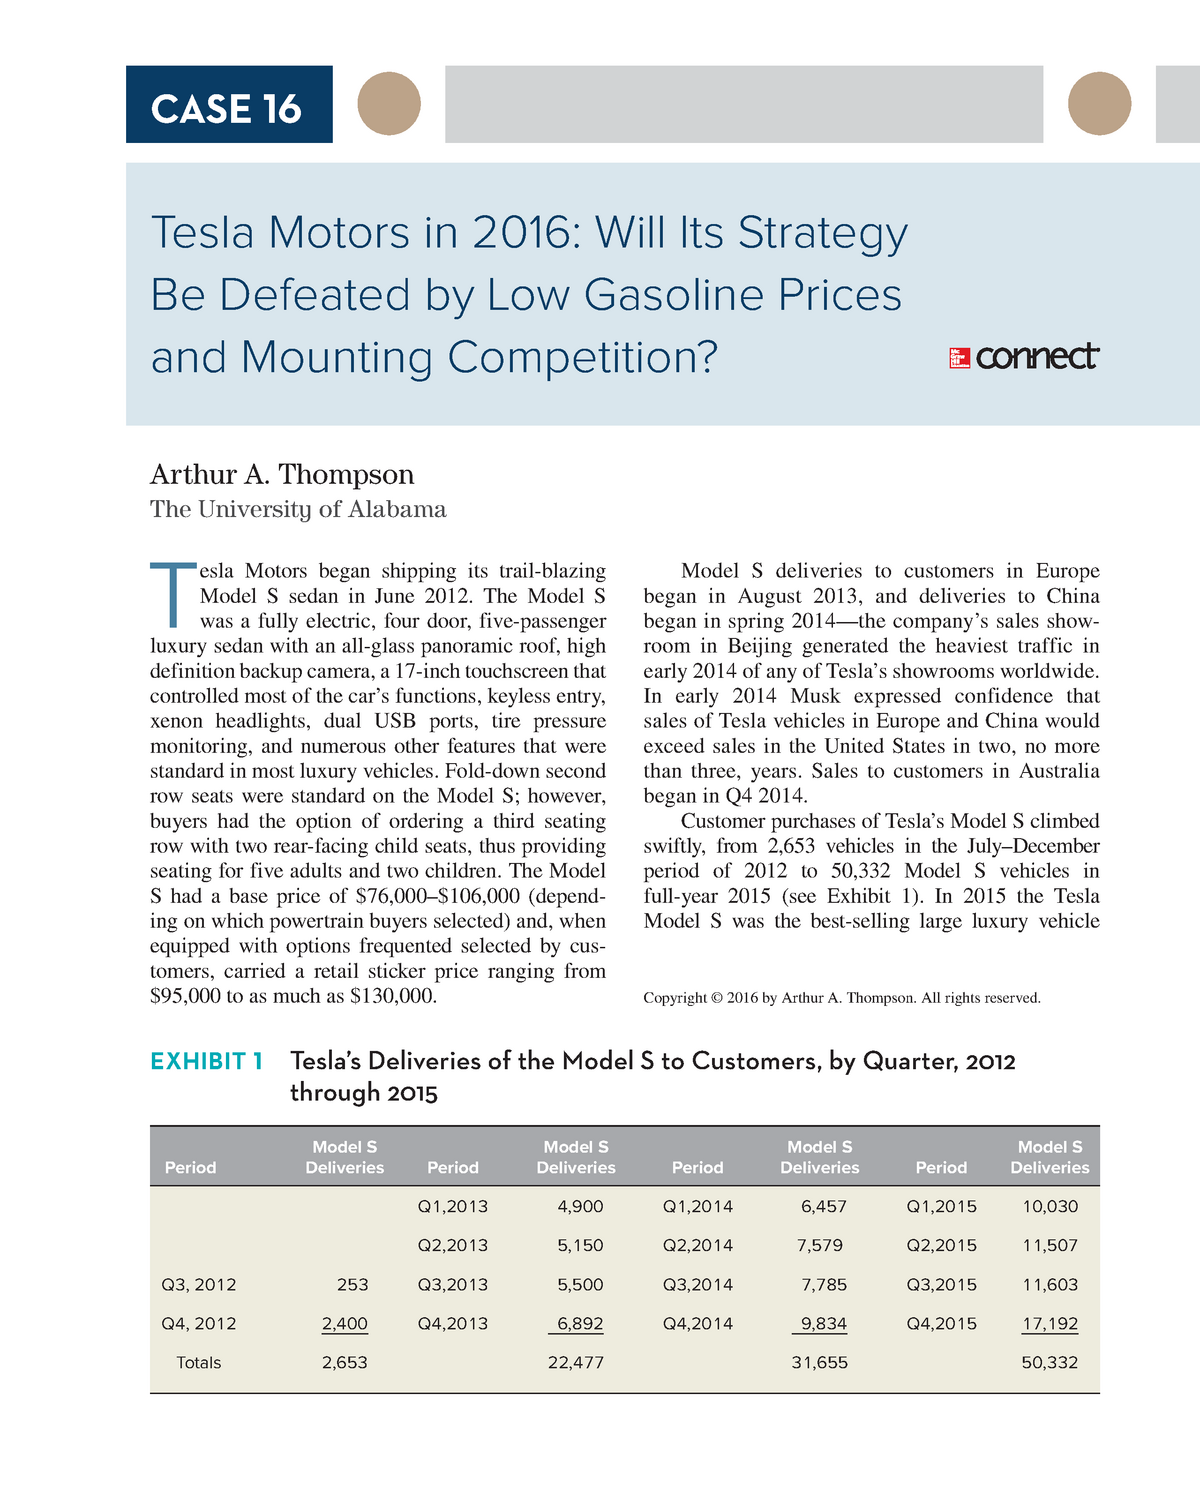 Case 16 - Tesla Motors in 2016 Will Its Strategy be Defeated